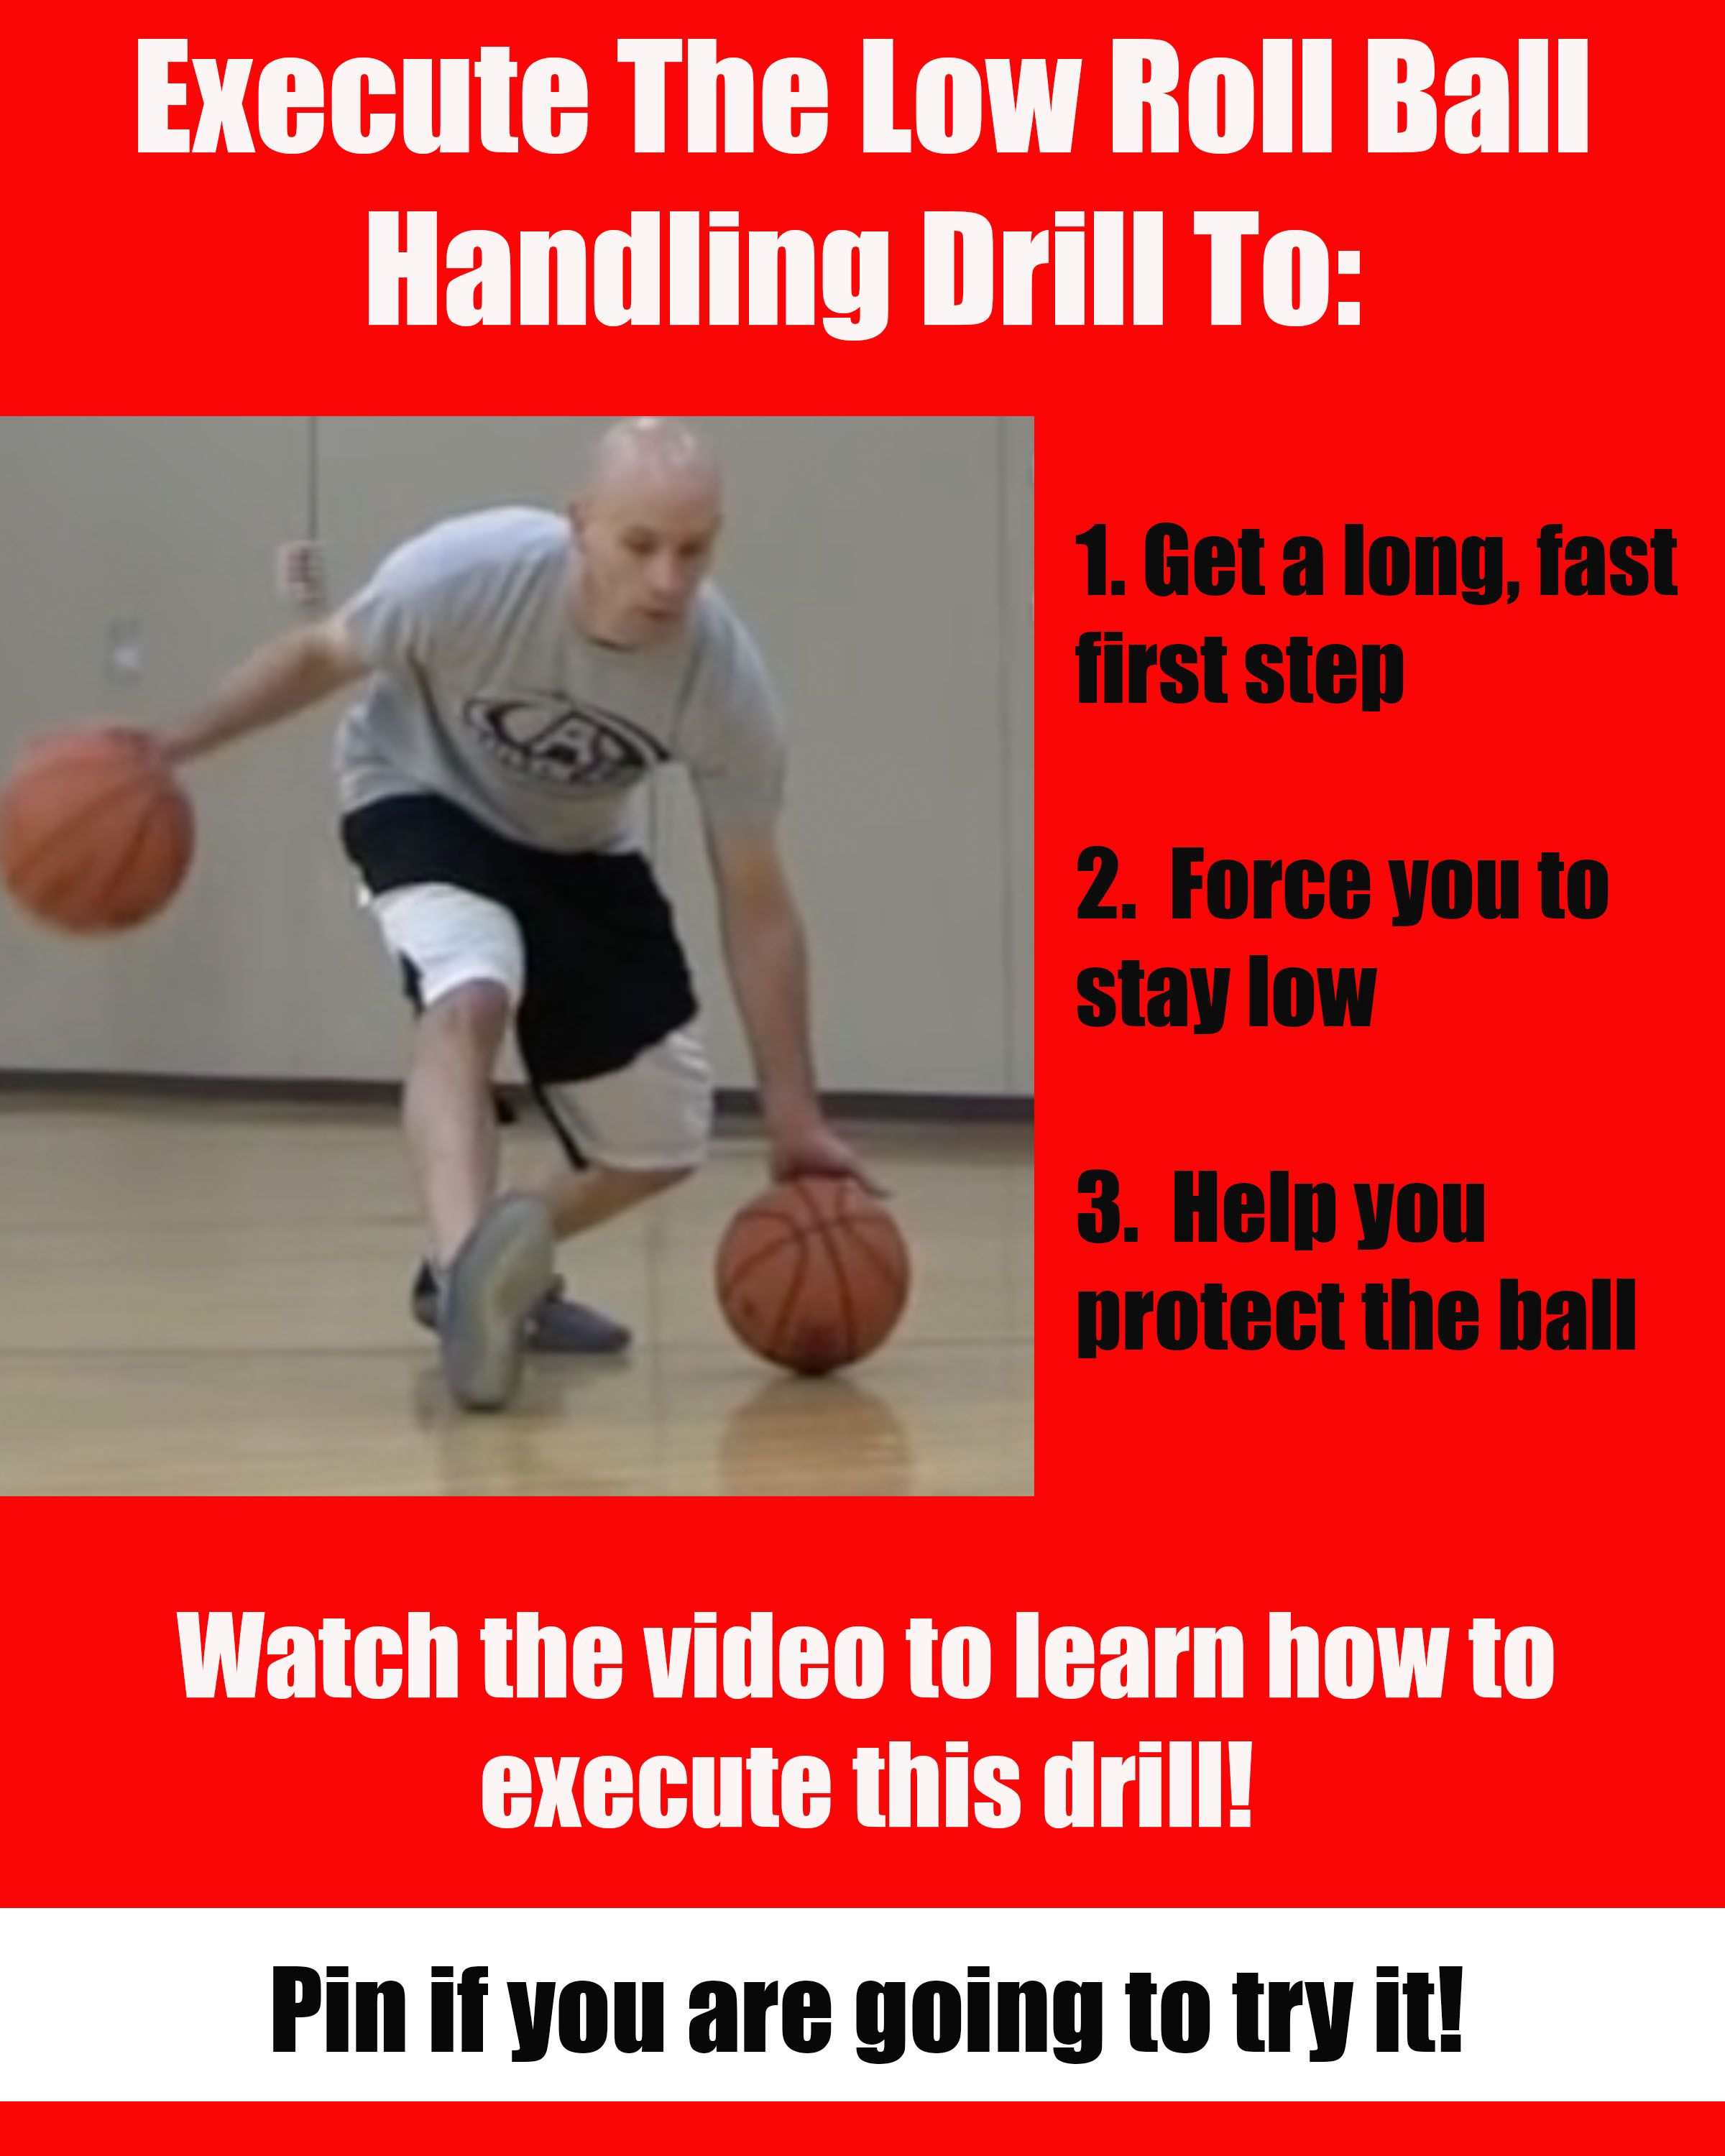 Improve Your Handles With The Low Roll Ball Handling Drill